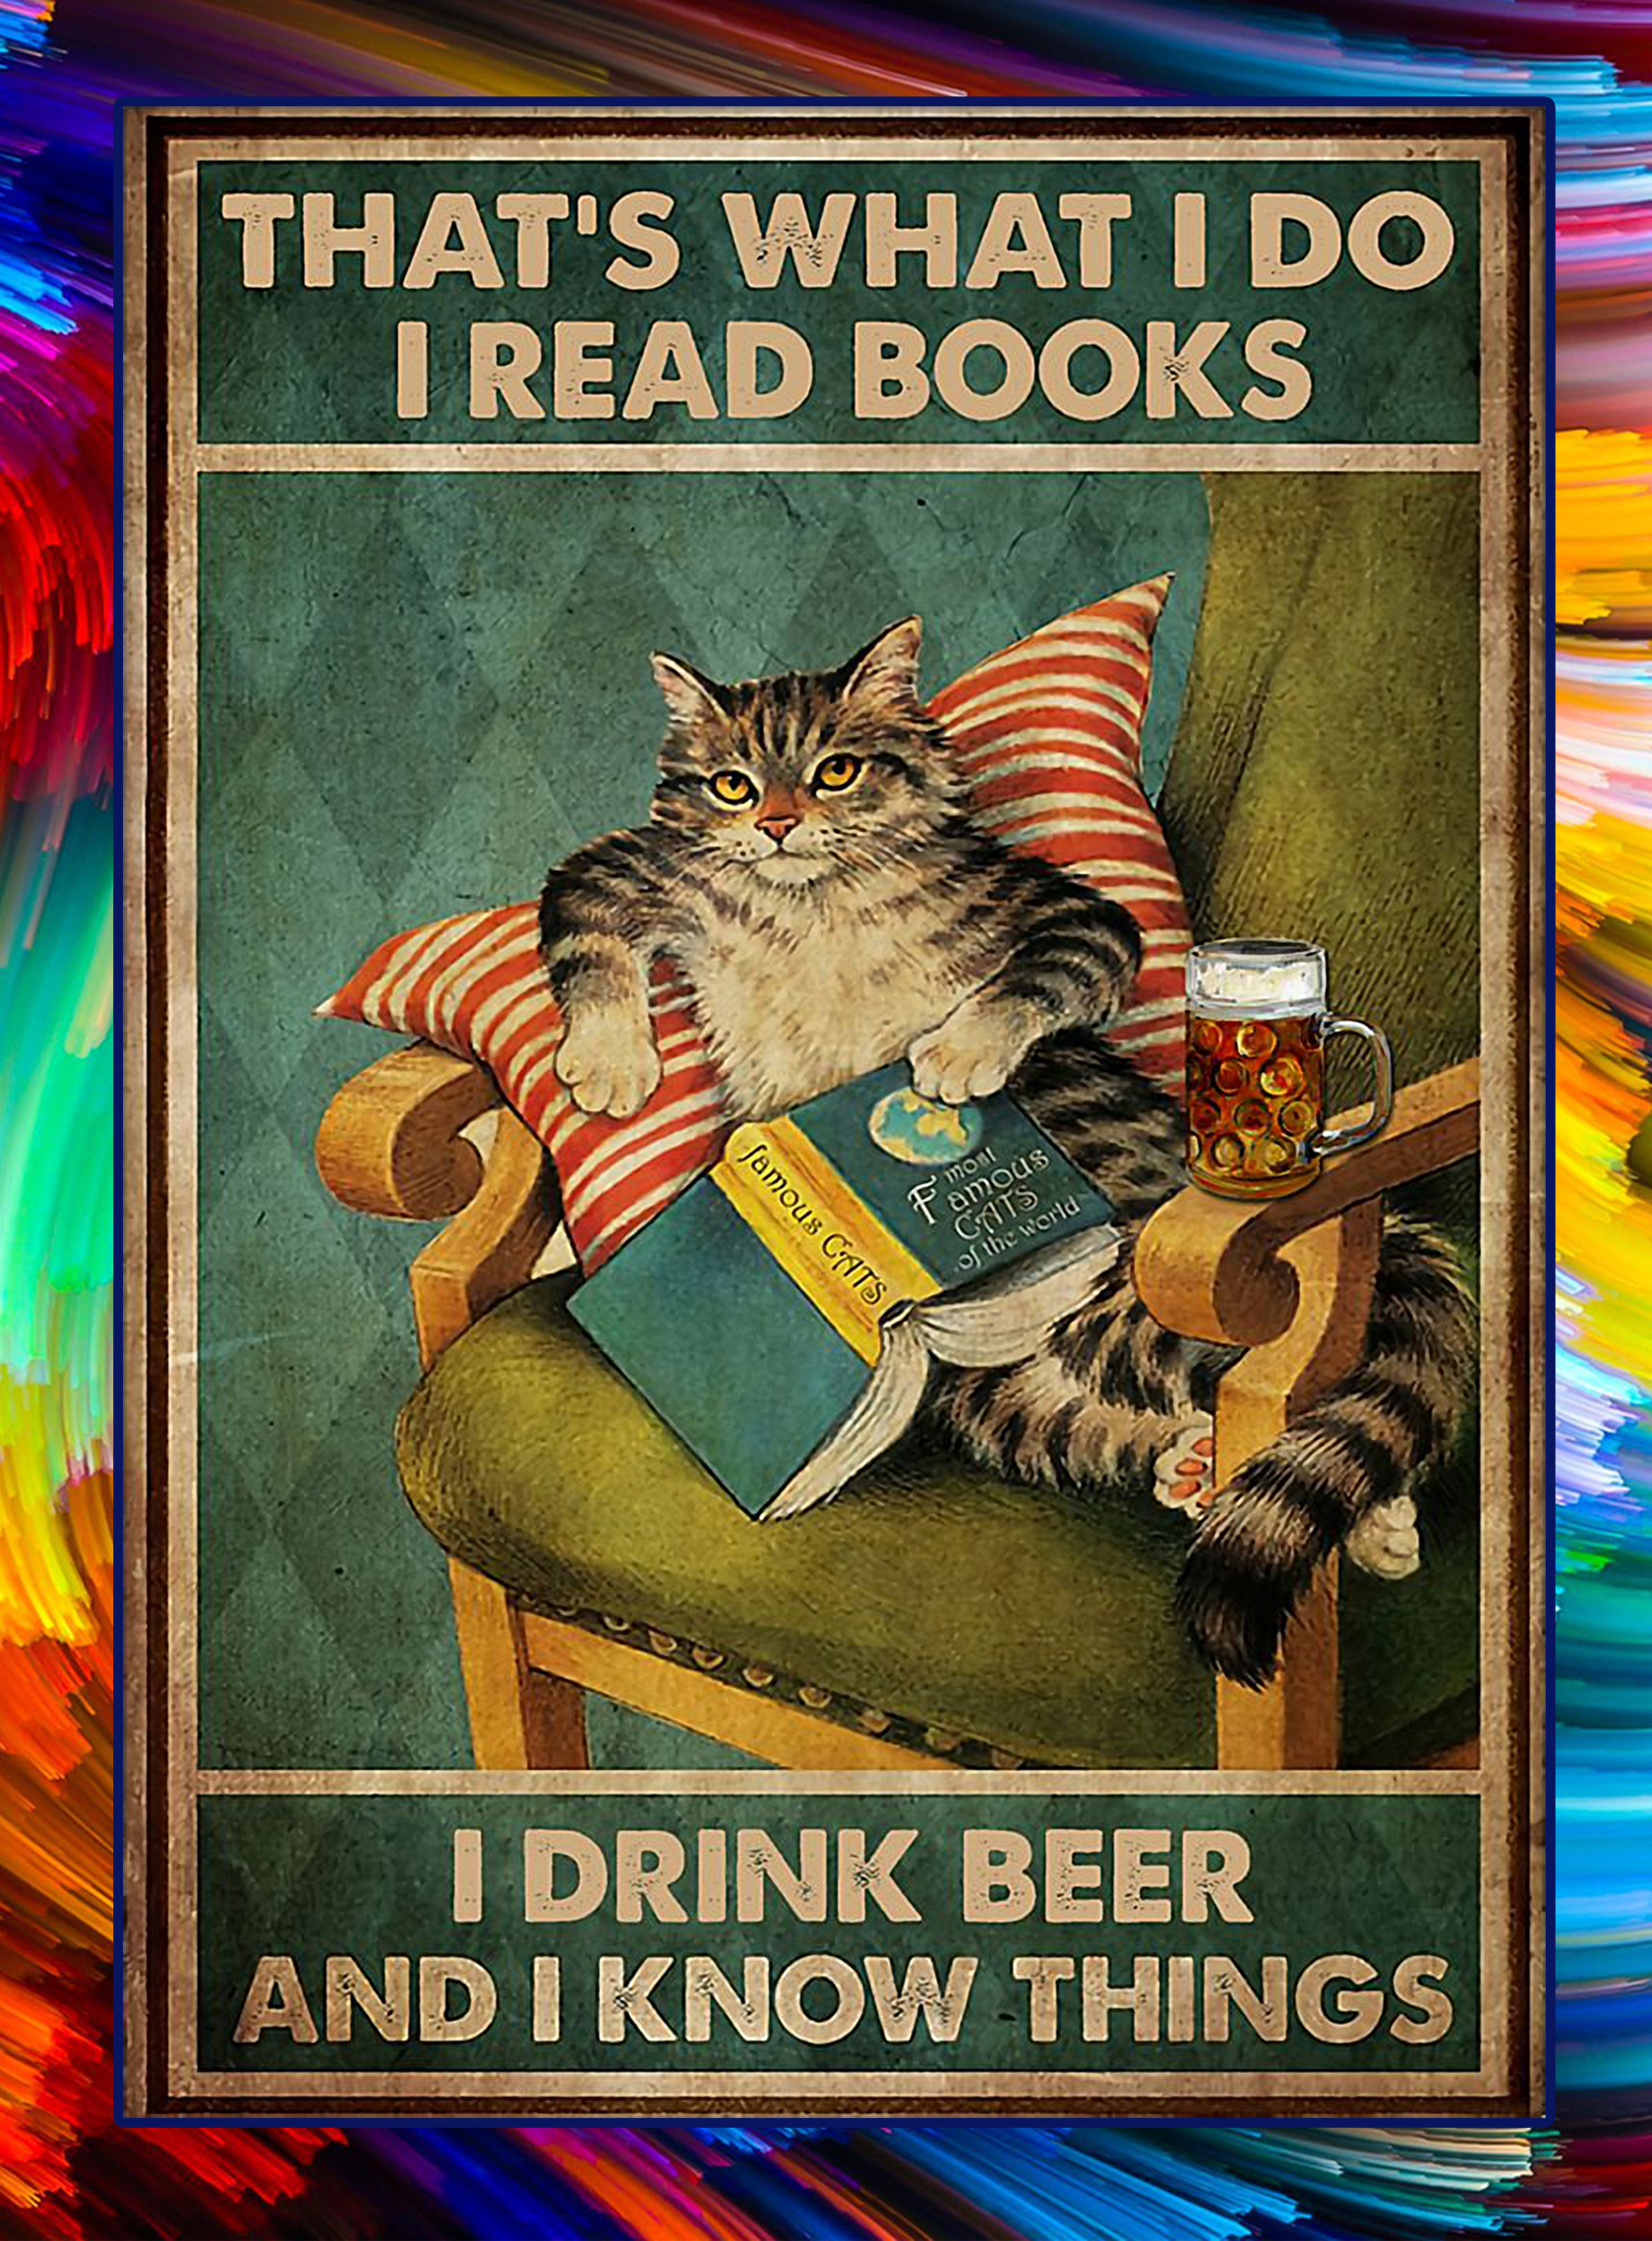 Cat that's what I do I read books I drink beer and I know things poster - A3